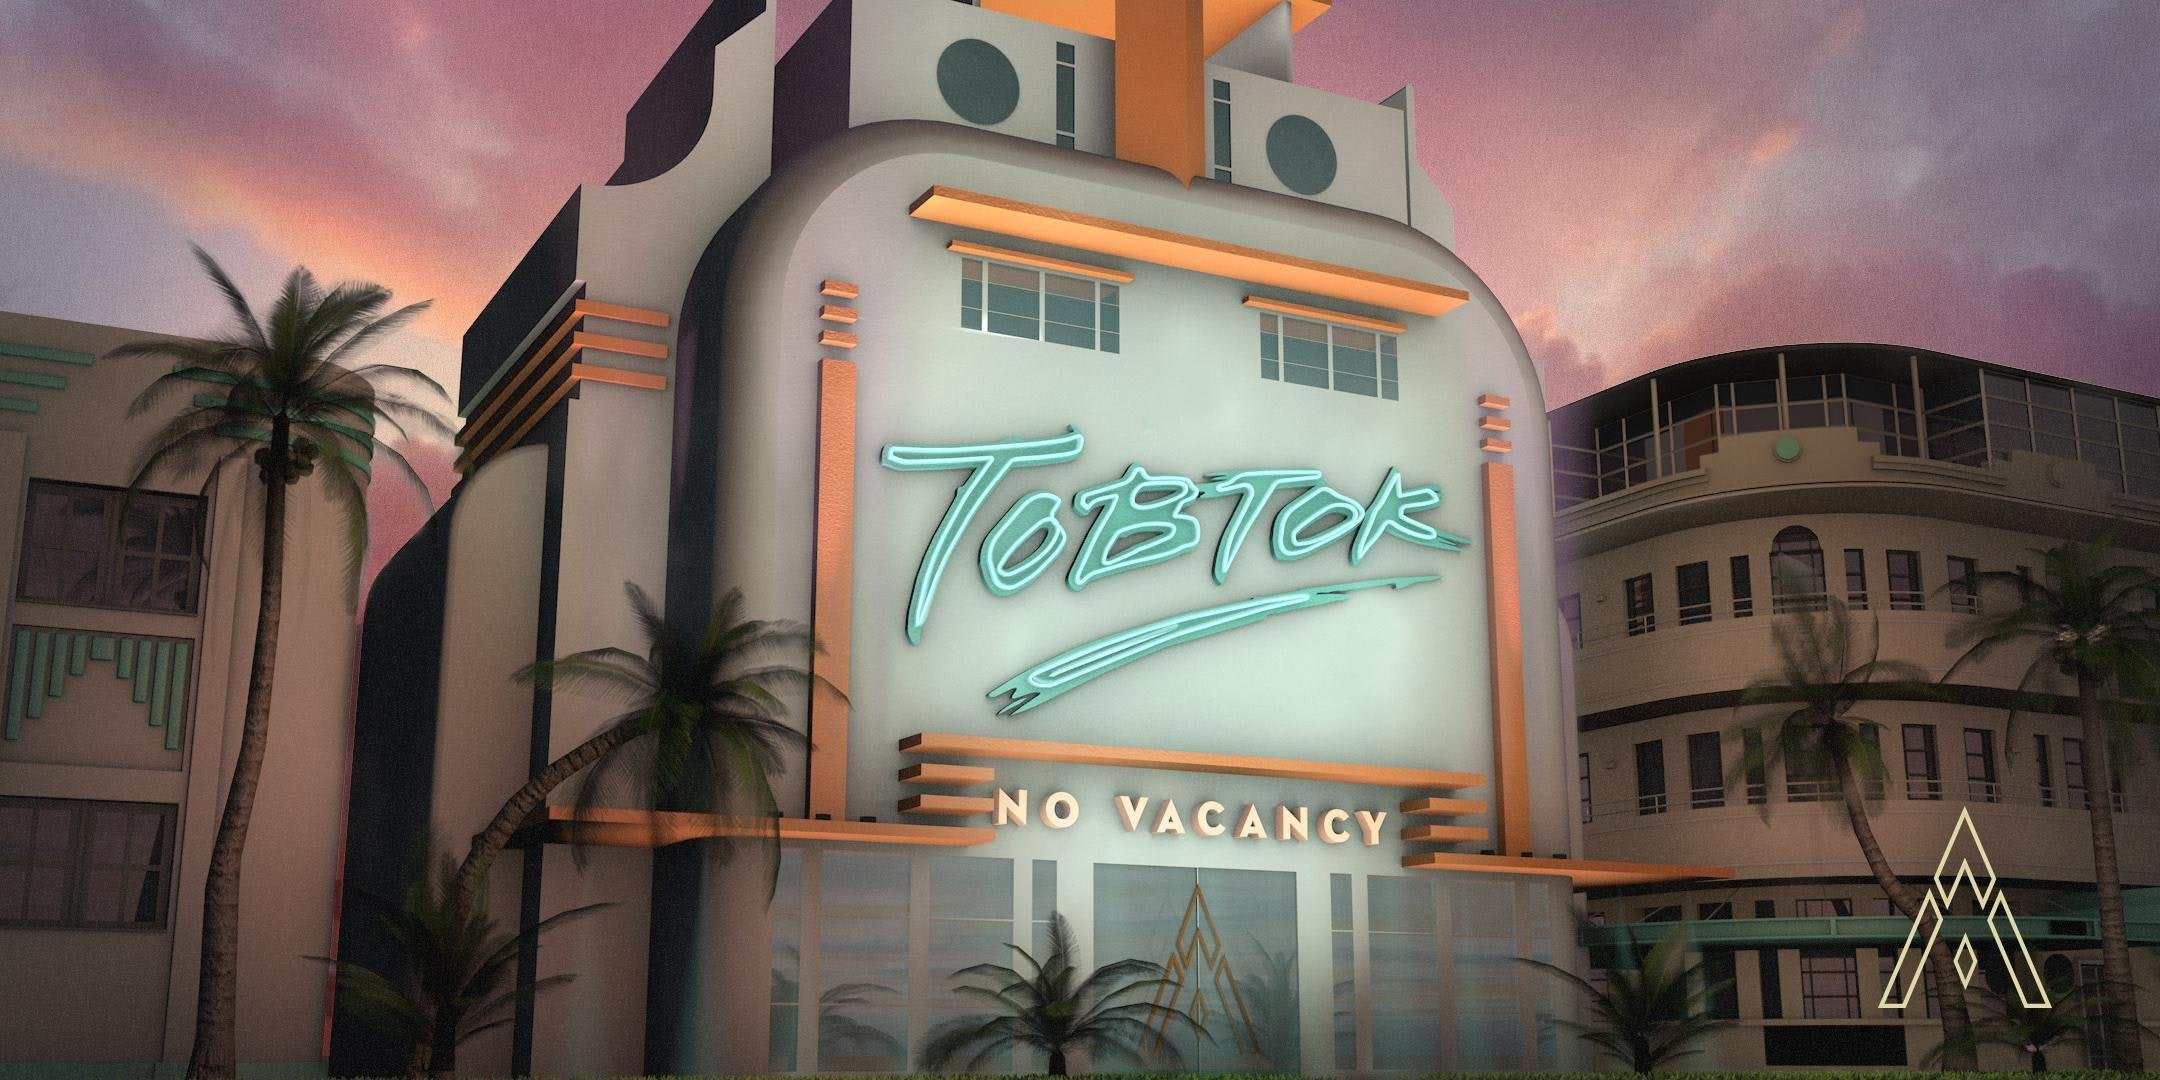 Tobtok sweden no vacancy lounge house music for Local house music